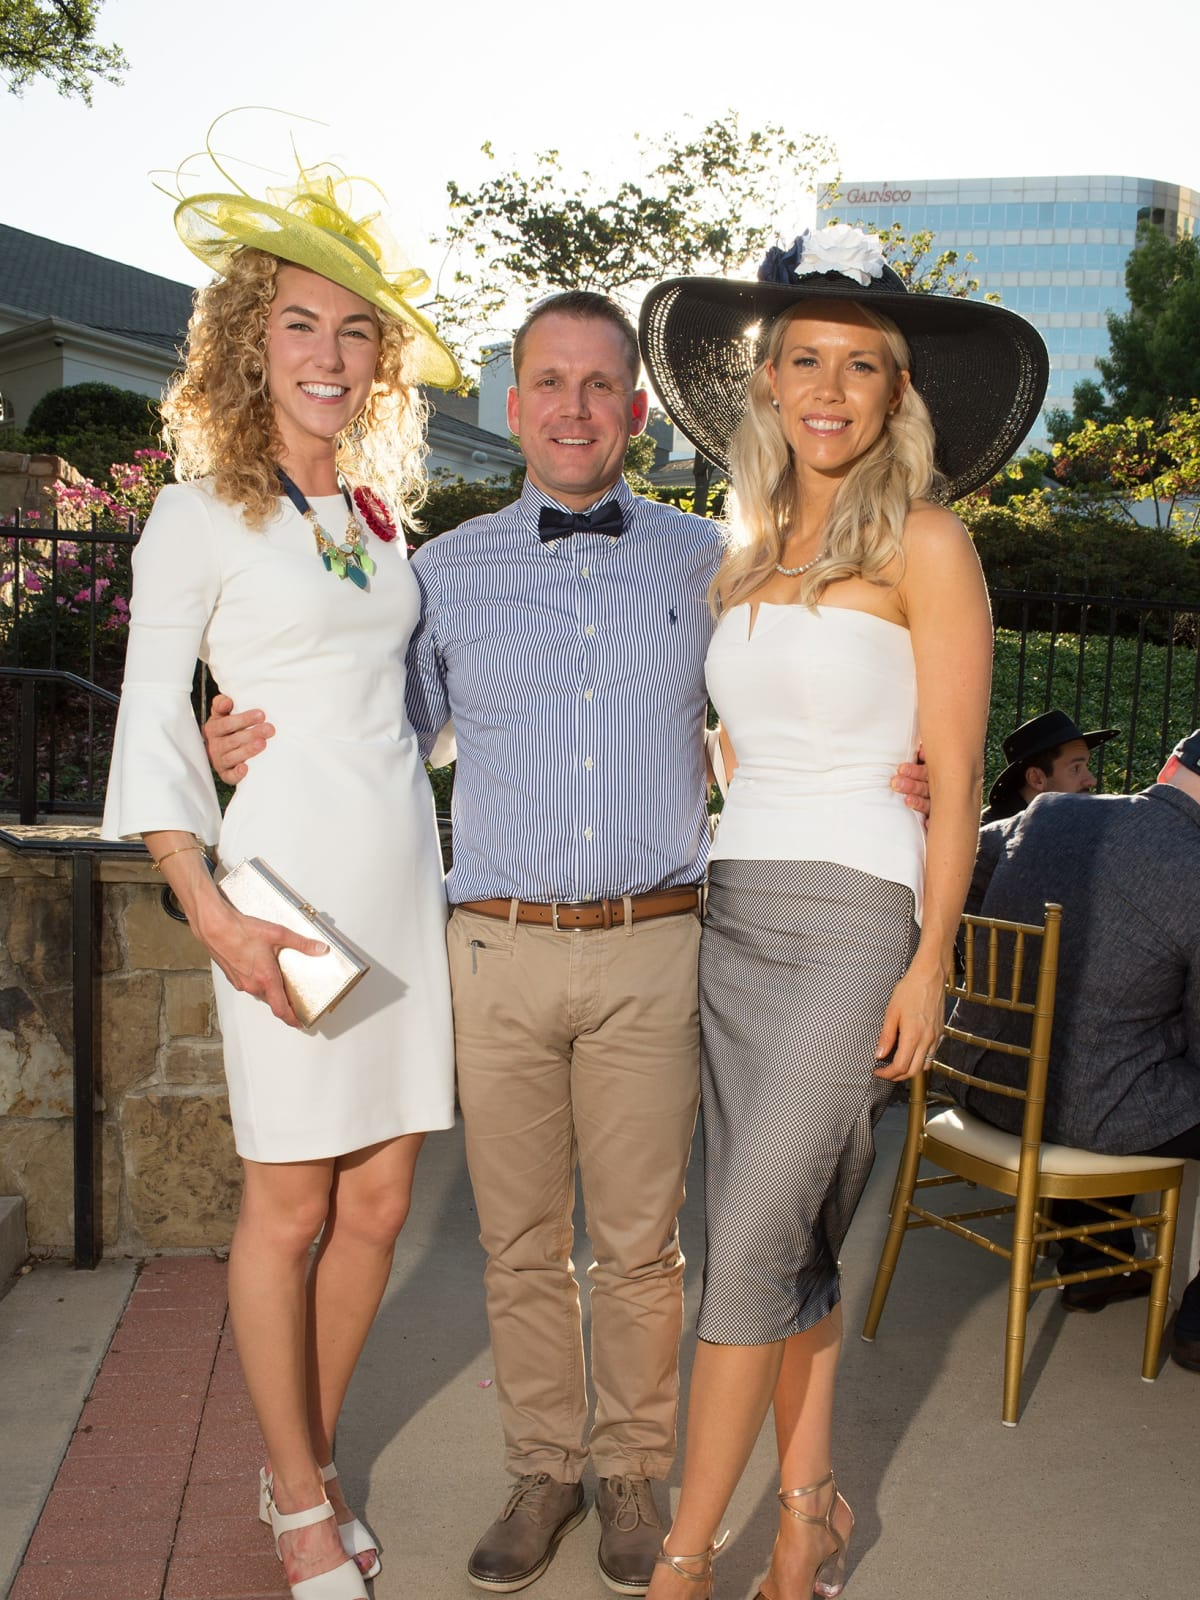 Day at the Races 2018, John and Sarah Schiller and Emily Bouyer